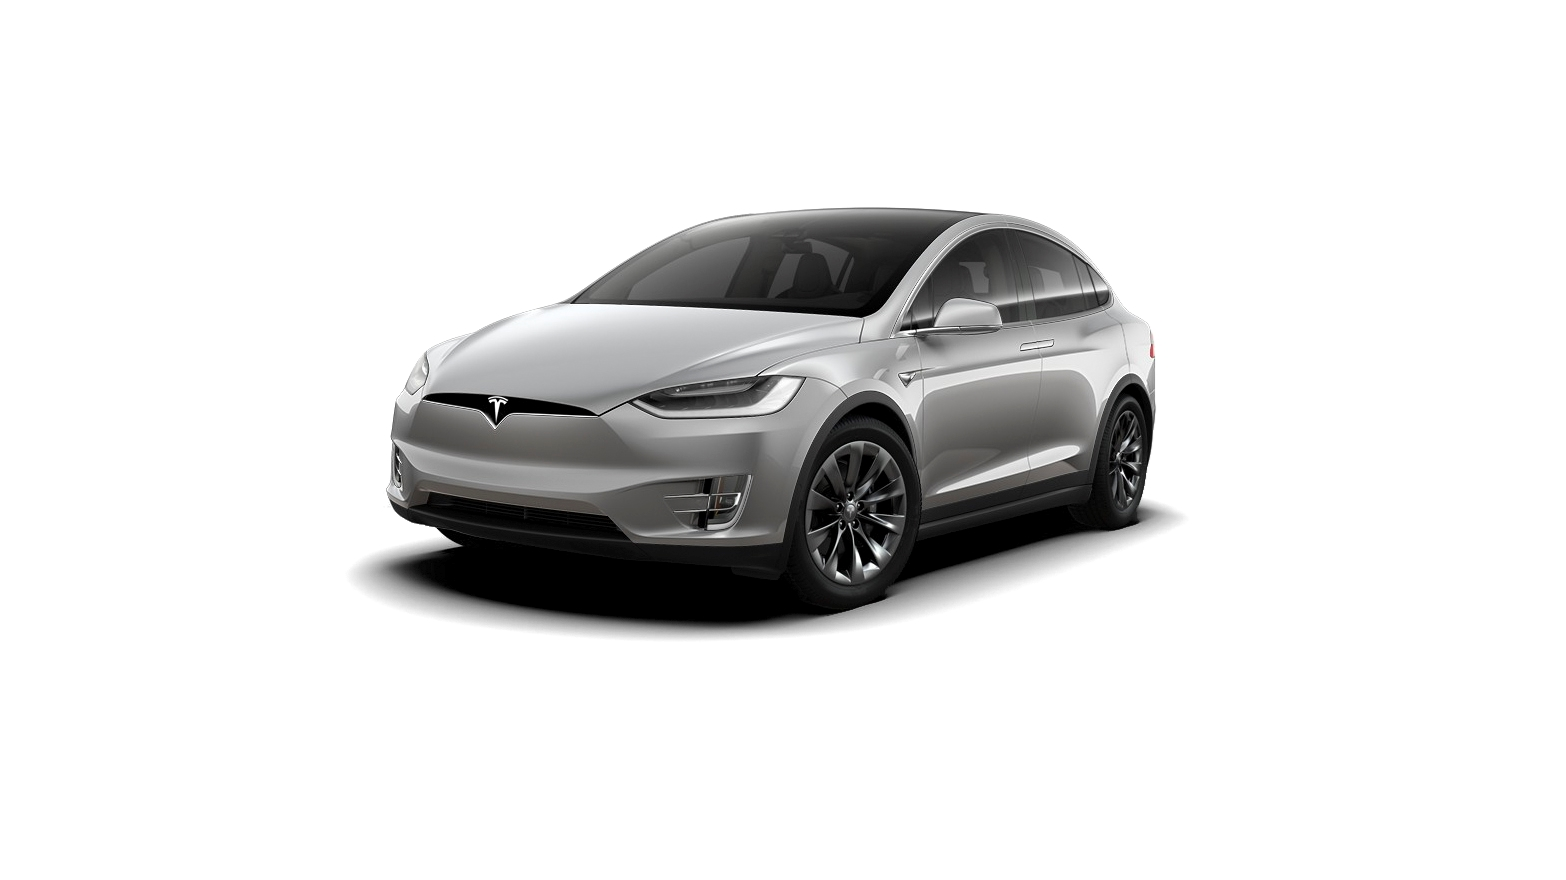 2018 Tesla Model X 100D Full Specs, Features and Price ...